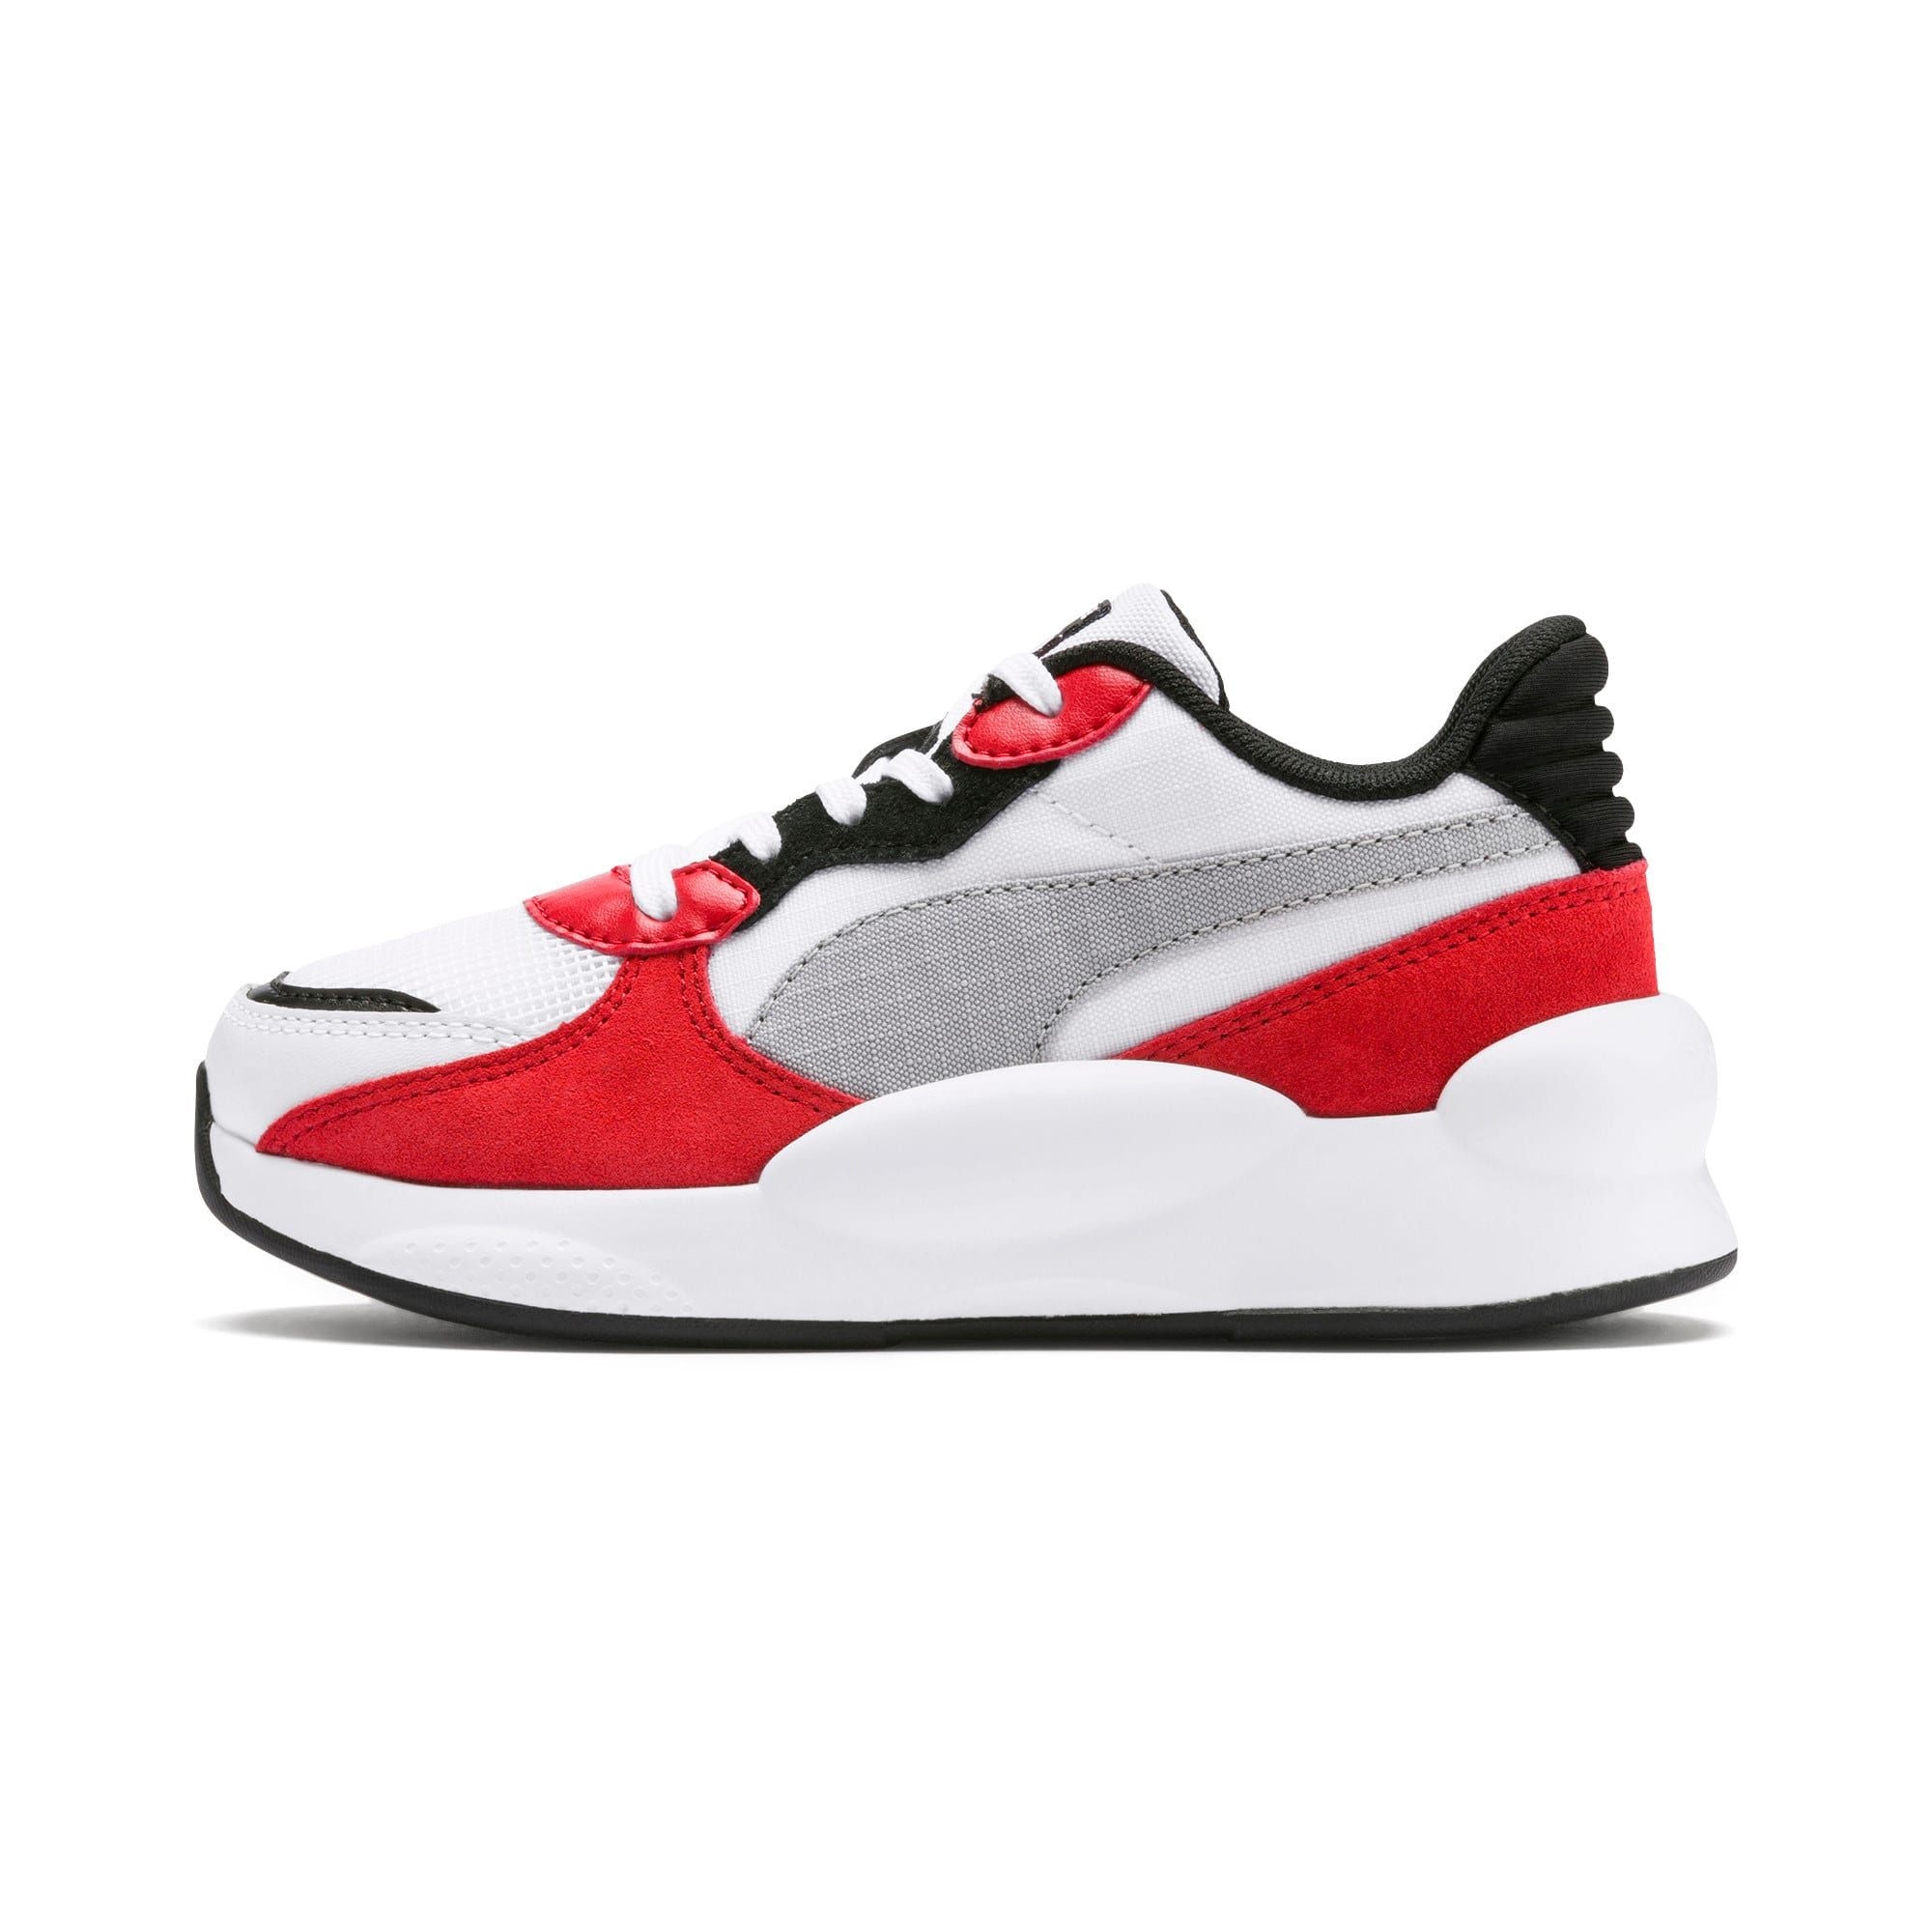 Thumbnail 1 of RS 9.8 Space Little Kids' Shoes, Puma White-High Risk Red, medium